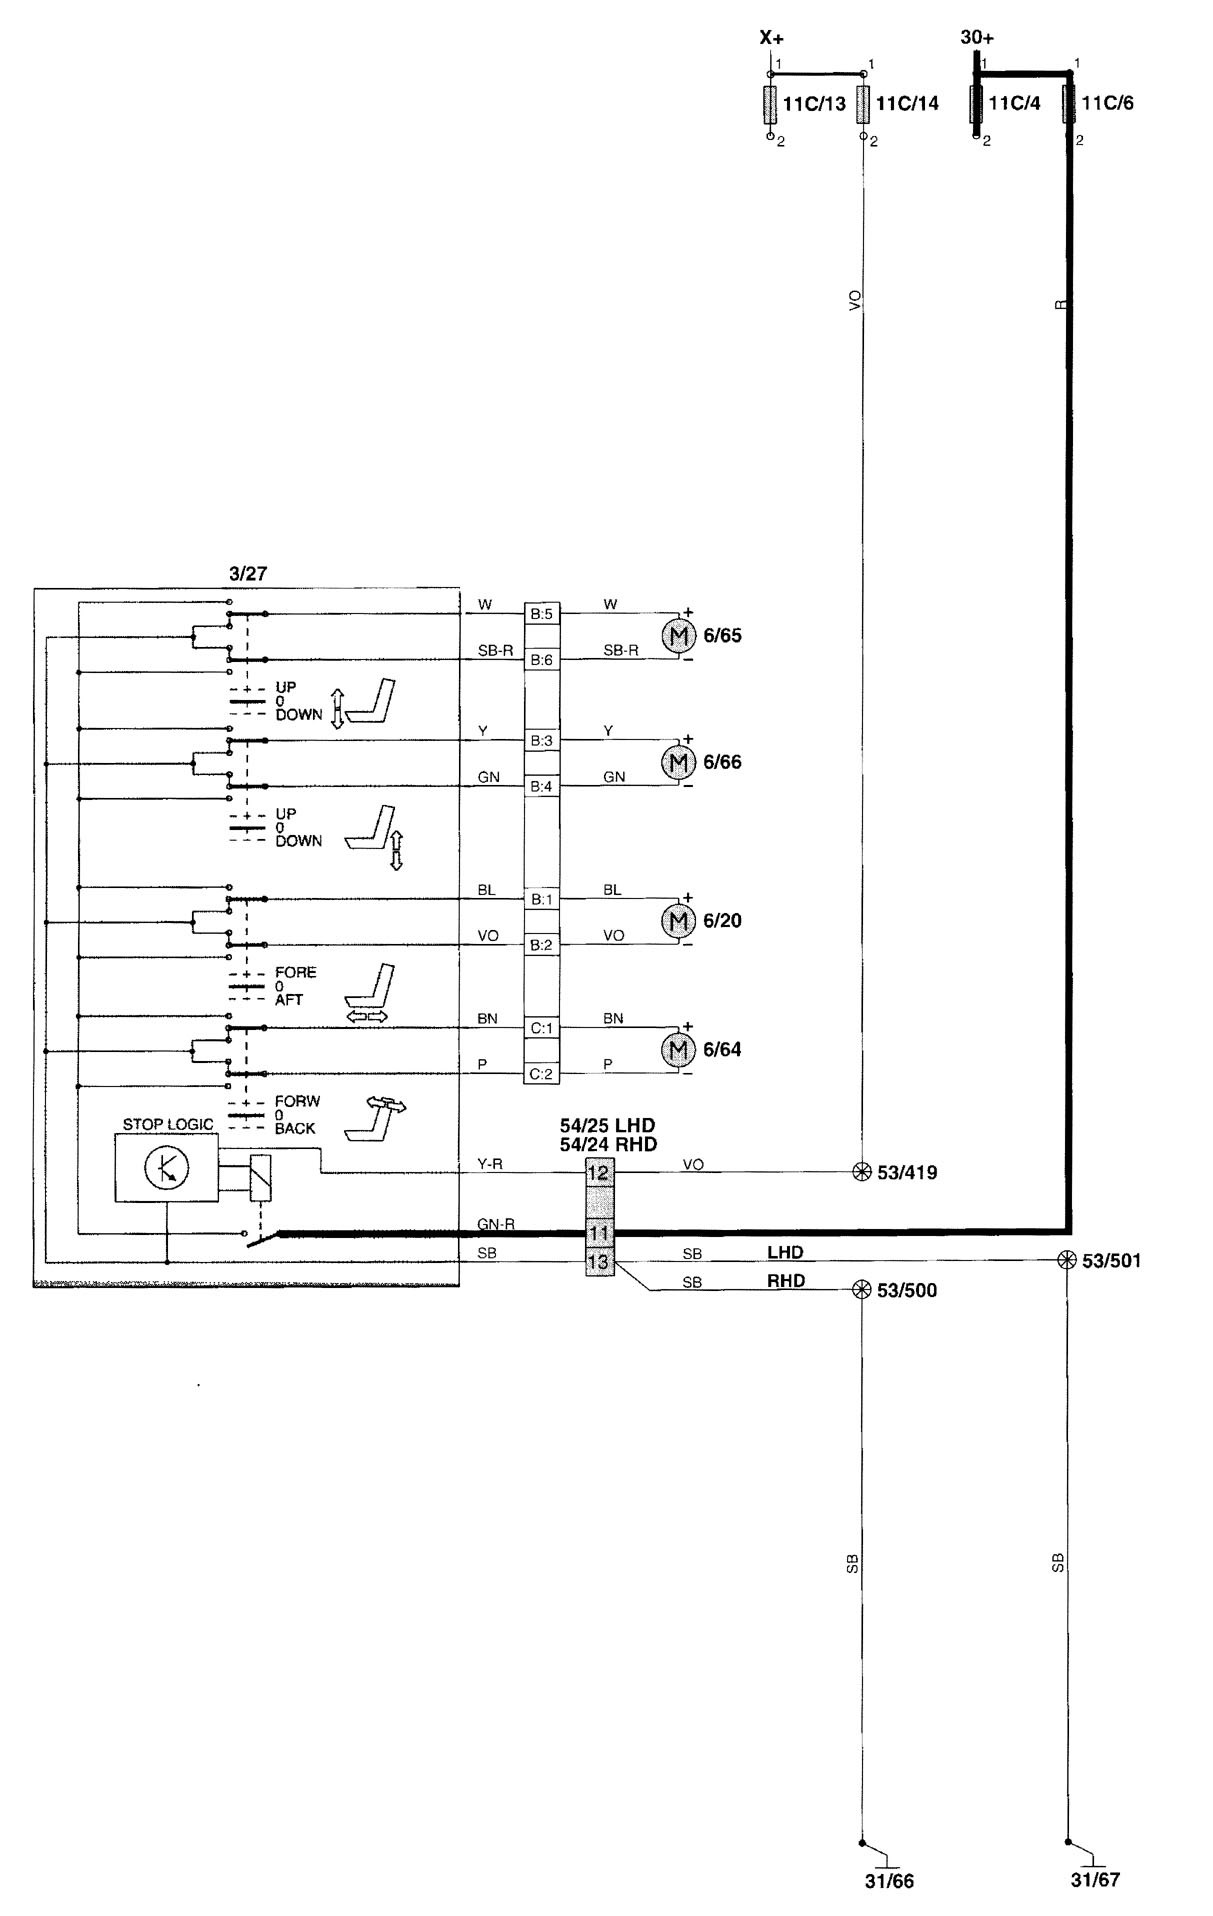 hight resolution of 2001 volvo v70 xc wiring diagram wiring diagrams bib 1999 volvo c70 wiring diagram volvo c70 wiring diagram